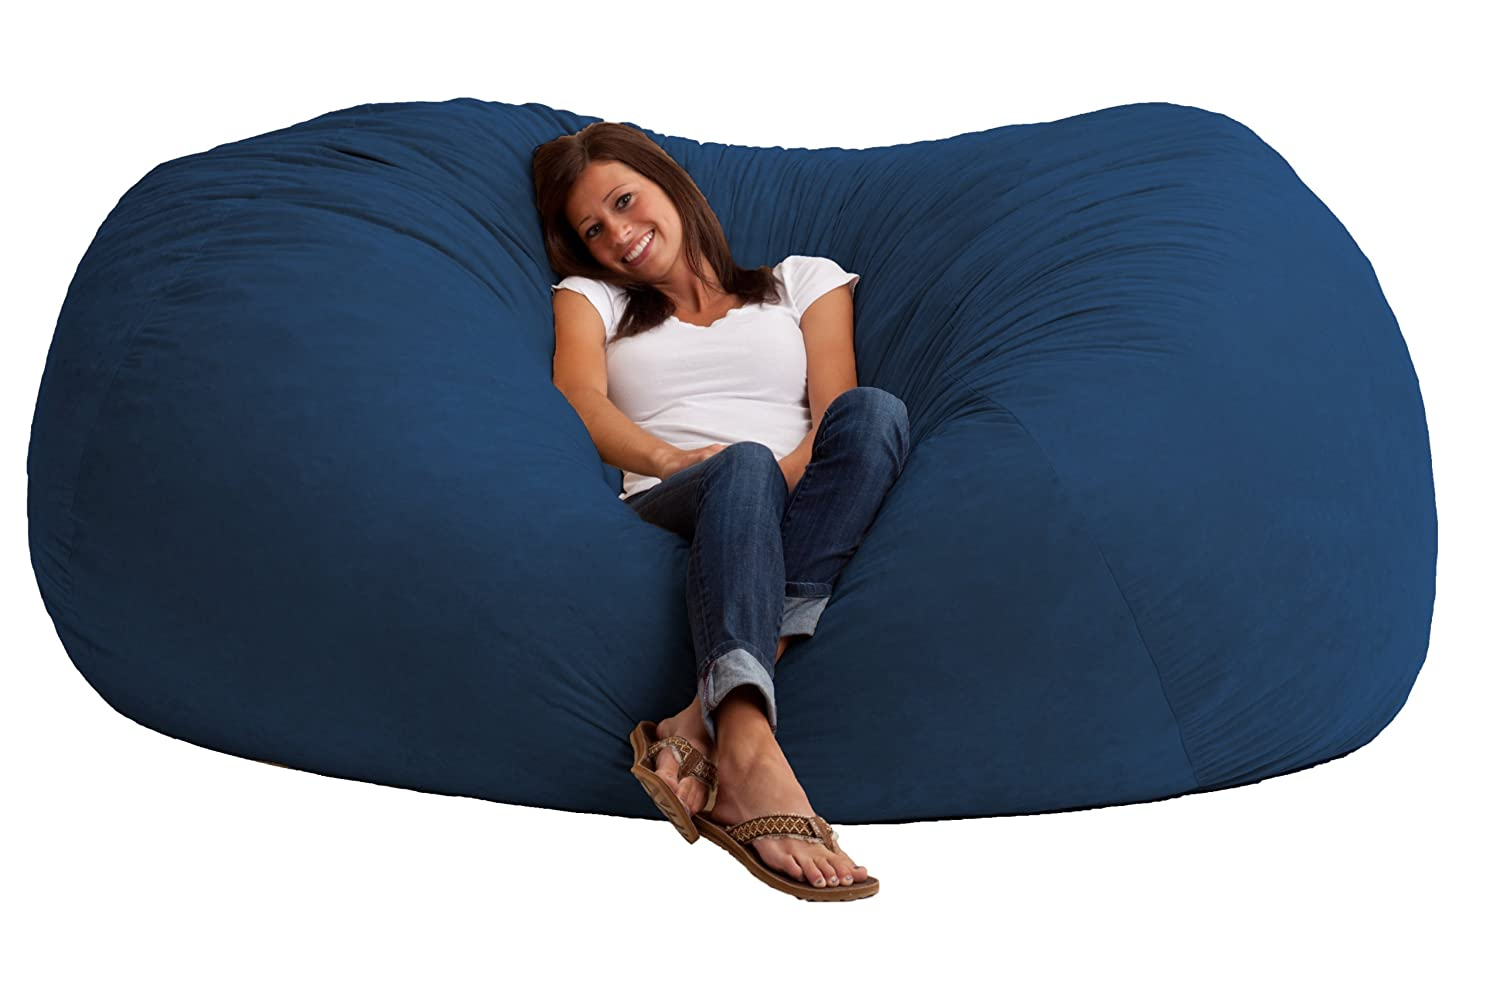 How to choose a Beanbag